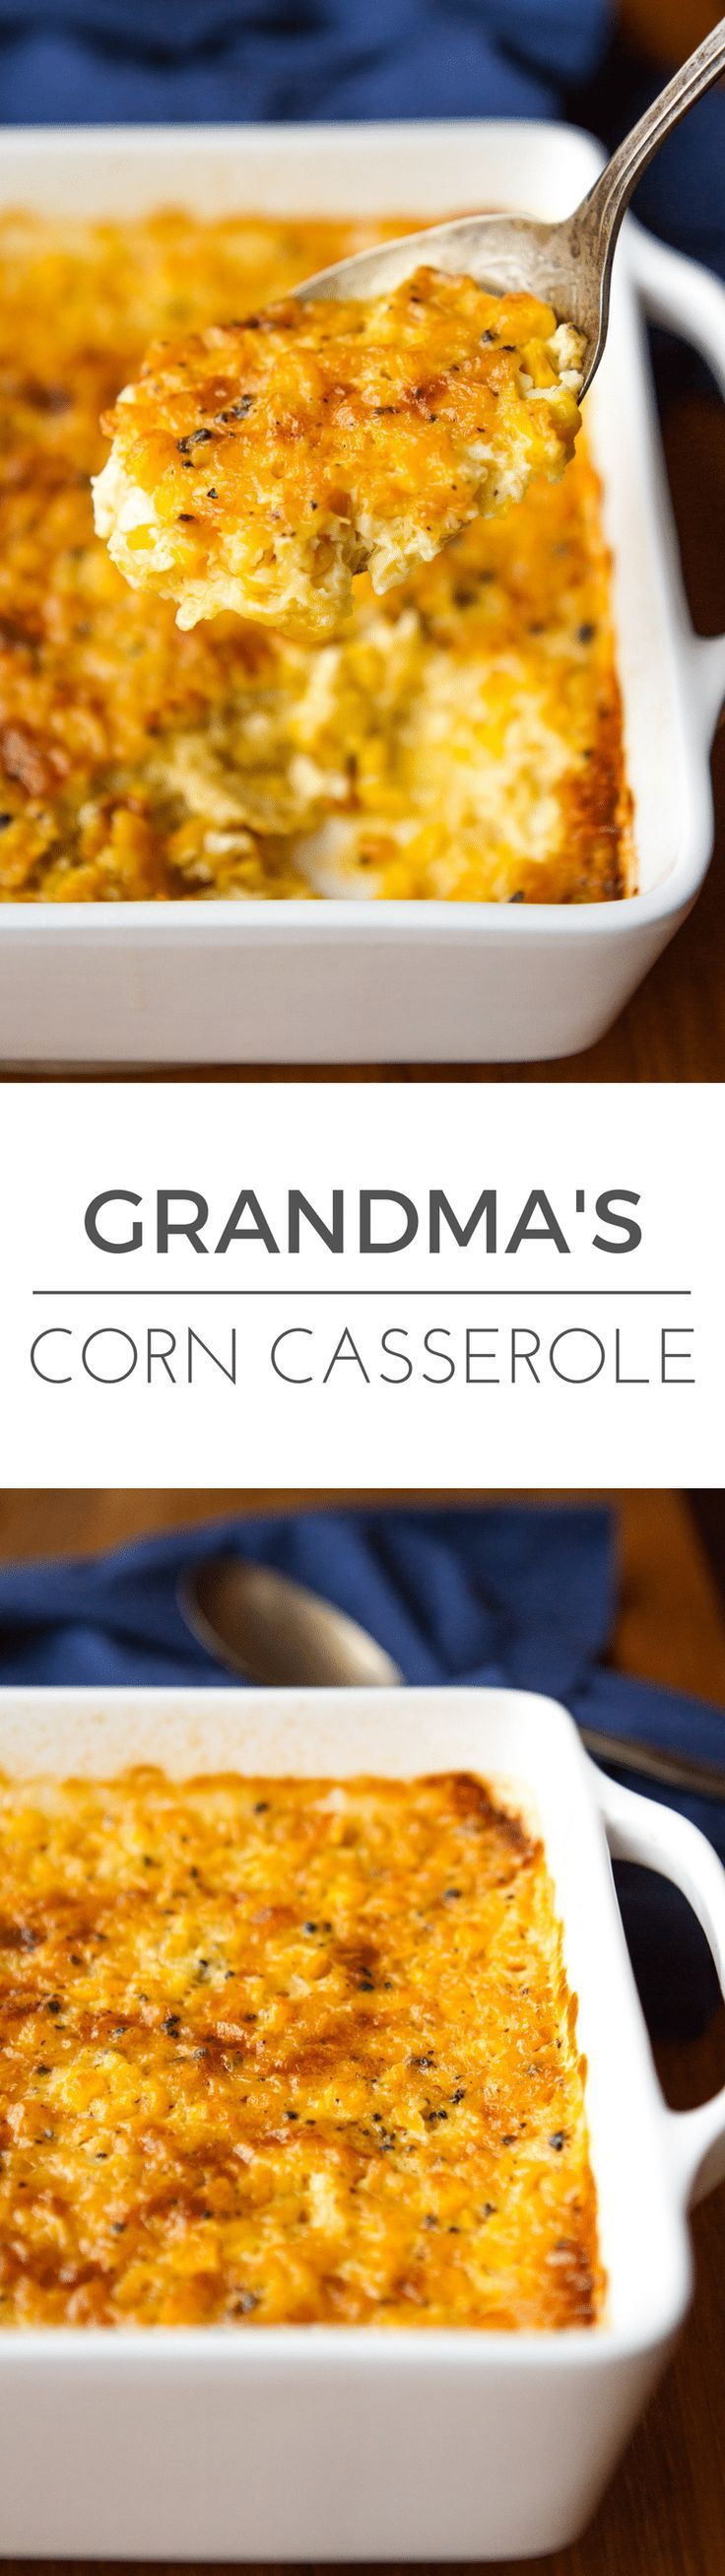 Corn Casserole Recipe -- Pinned over 235,000 times! This creamed corn casserole recipe is SO good you'll want to scrape the dish completely clean to get every last bit of caramelized goodness from the corners! It's on the menu for every family gathering I host… | http://unsophisticook.com